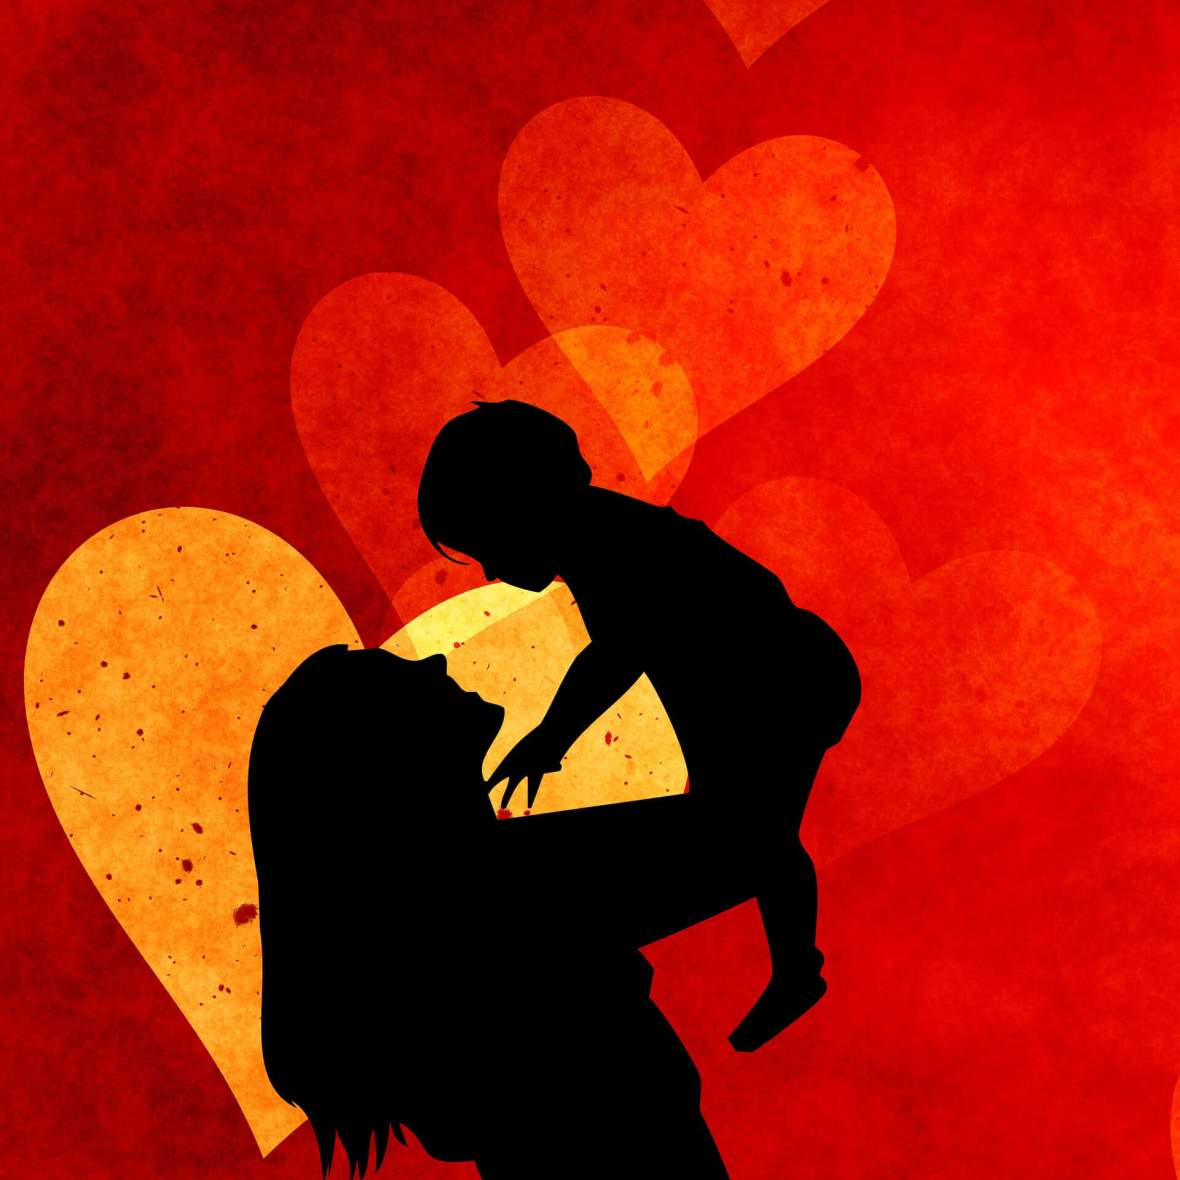 mother and child on a red background. Why you shouldn't punish children for their parents problems. children are innocent by miss mental personal story